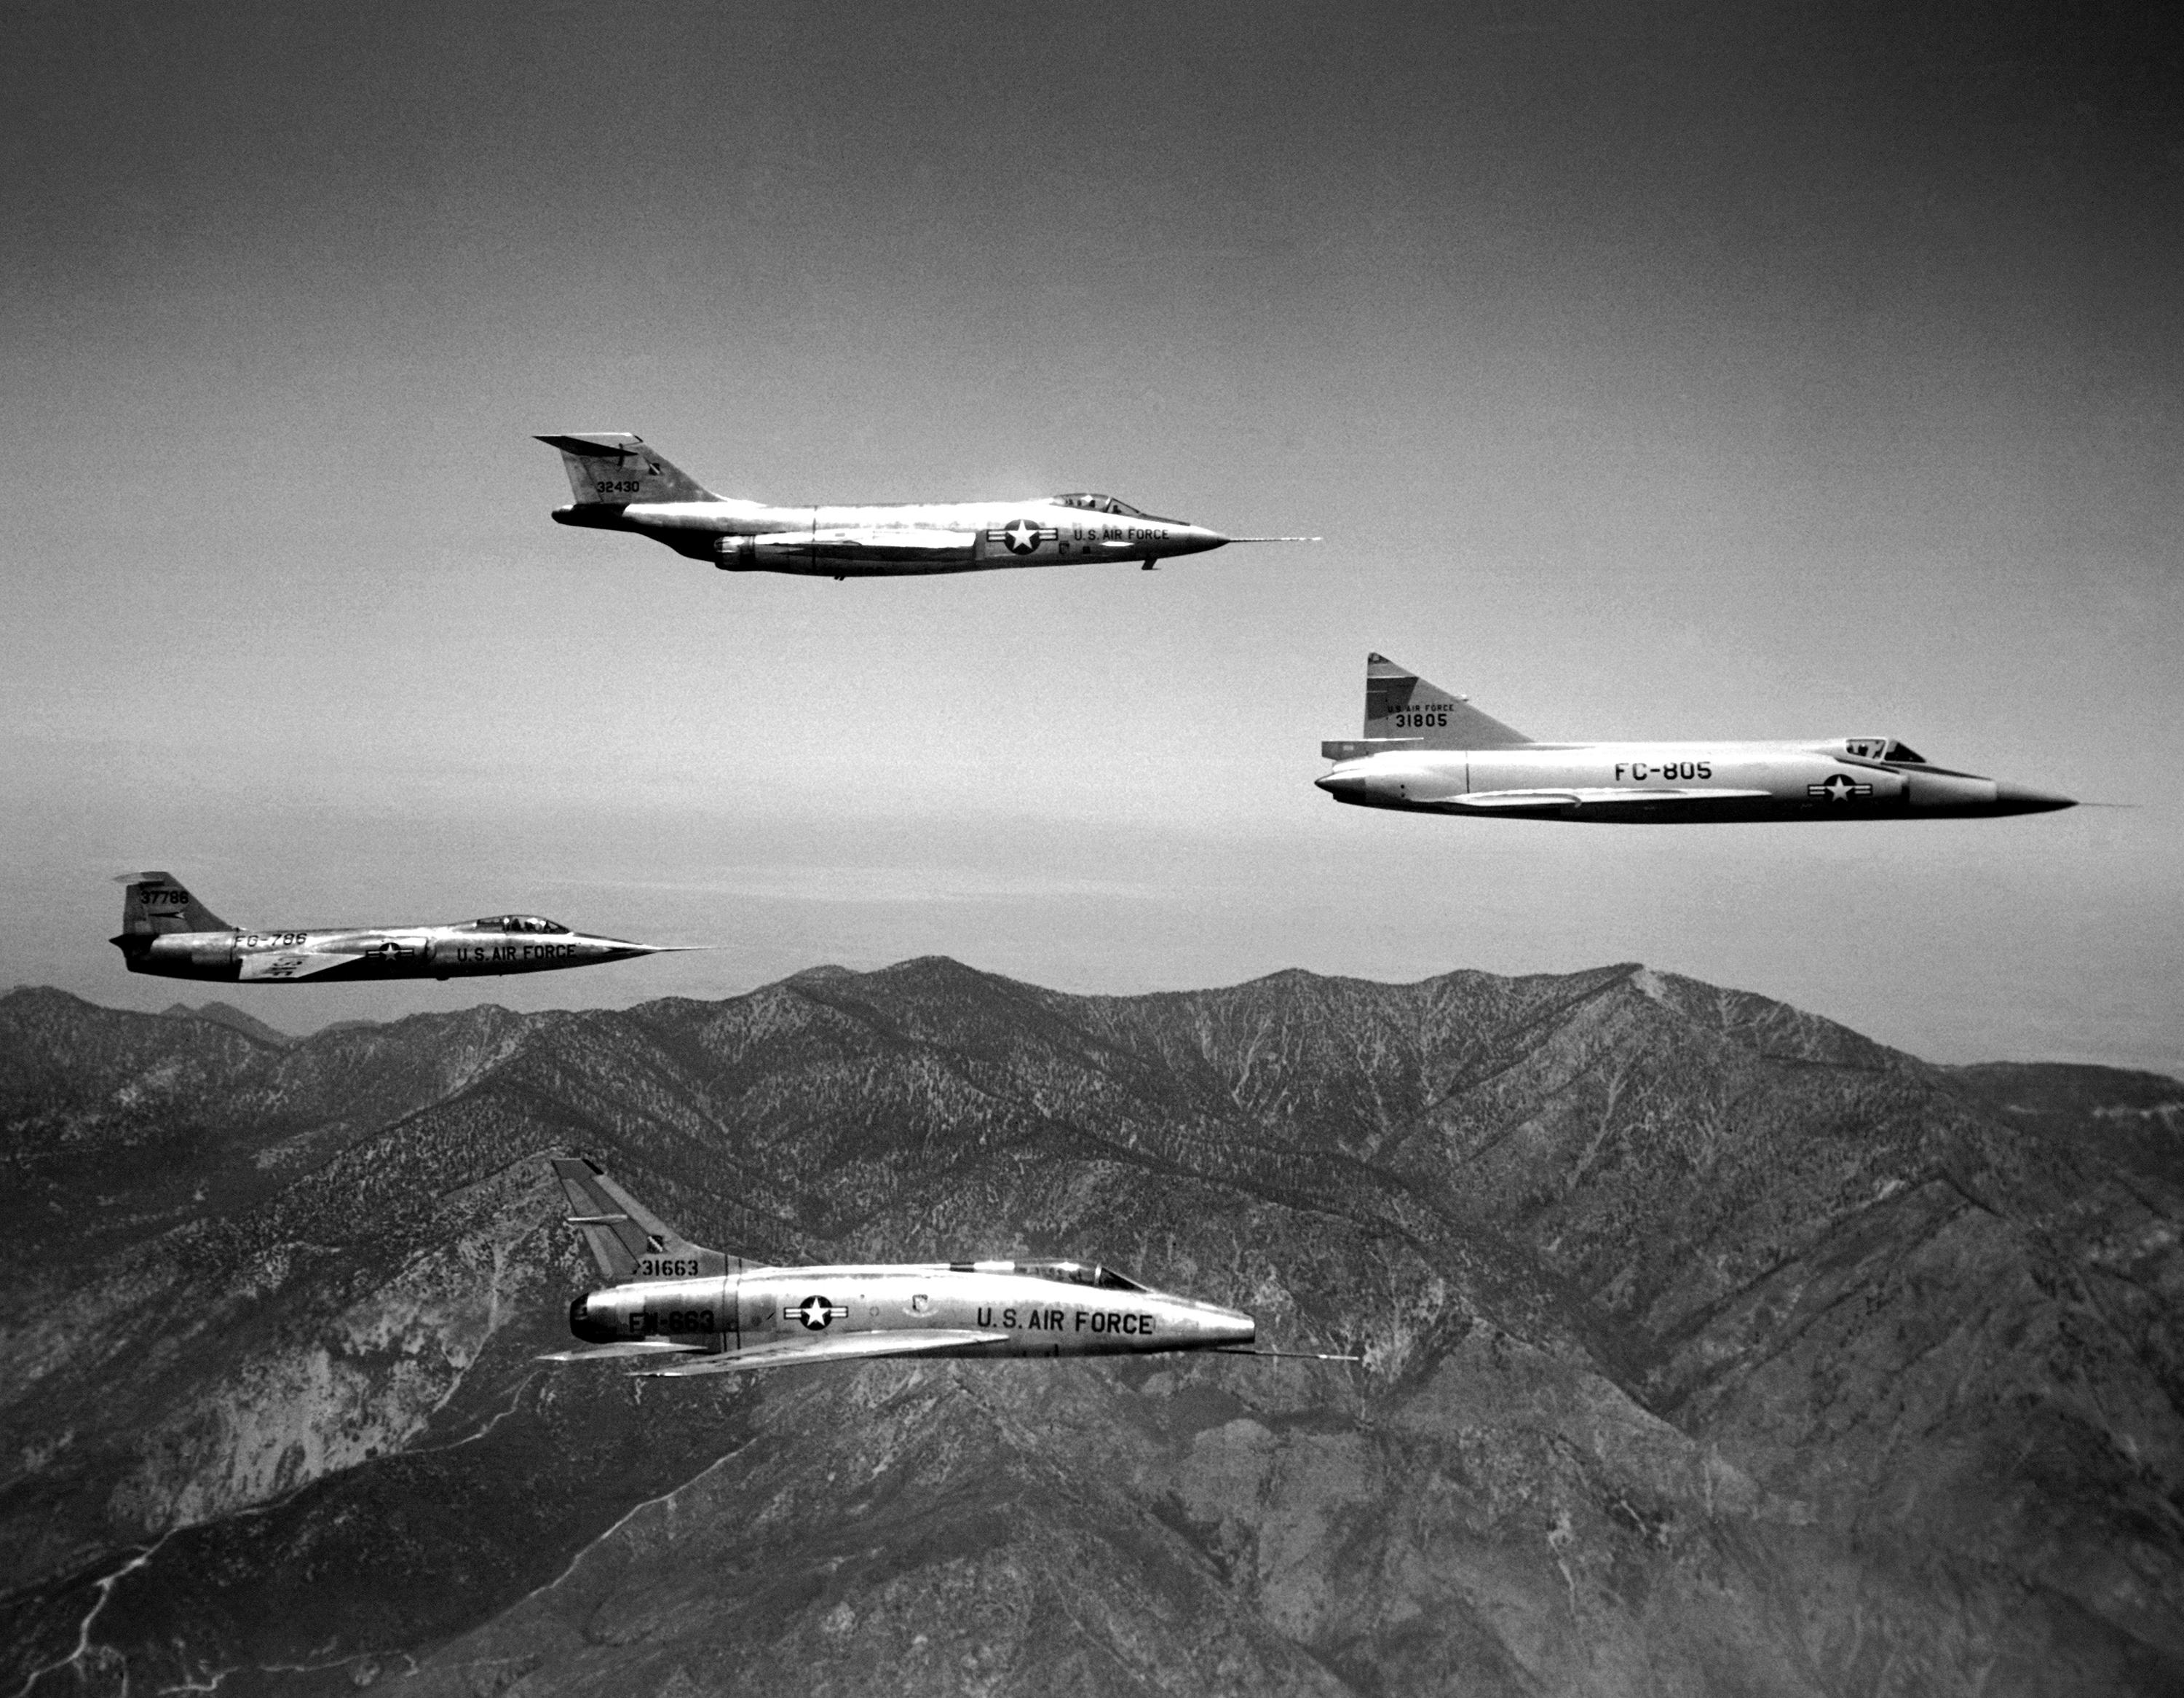 f 104 nasa dryden test fleet - photo #42